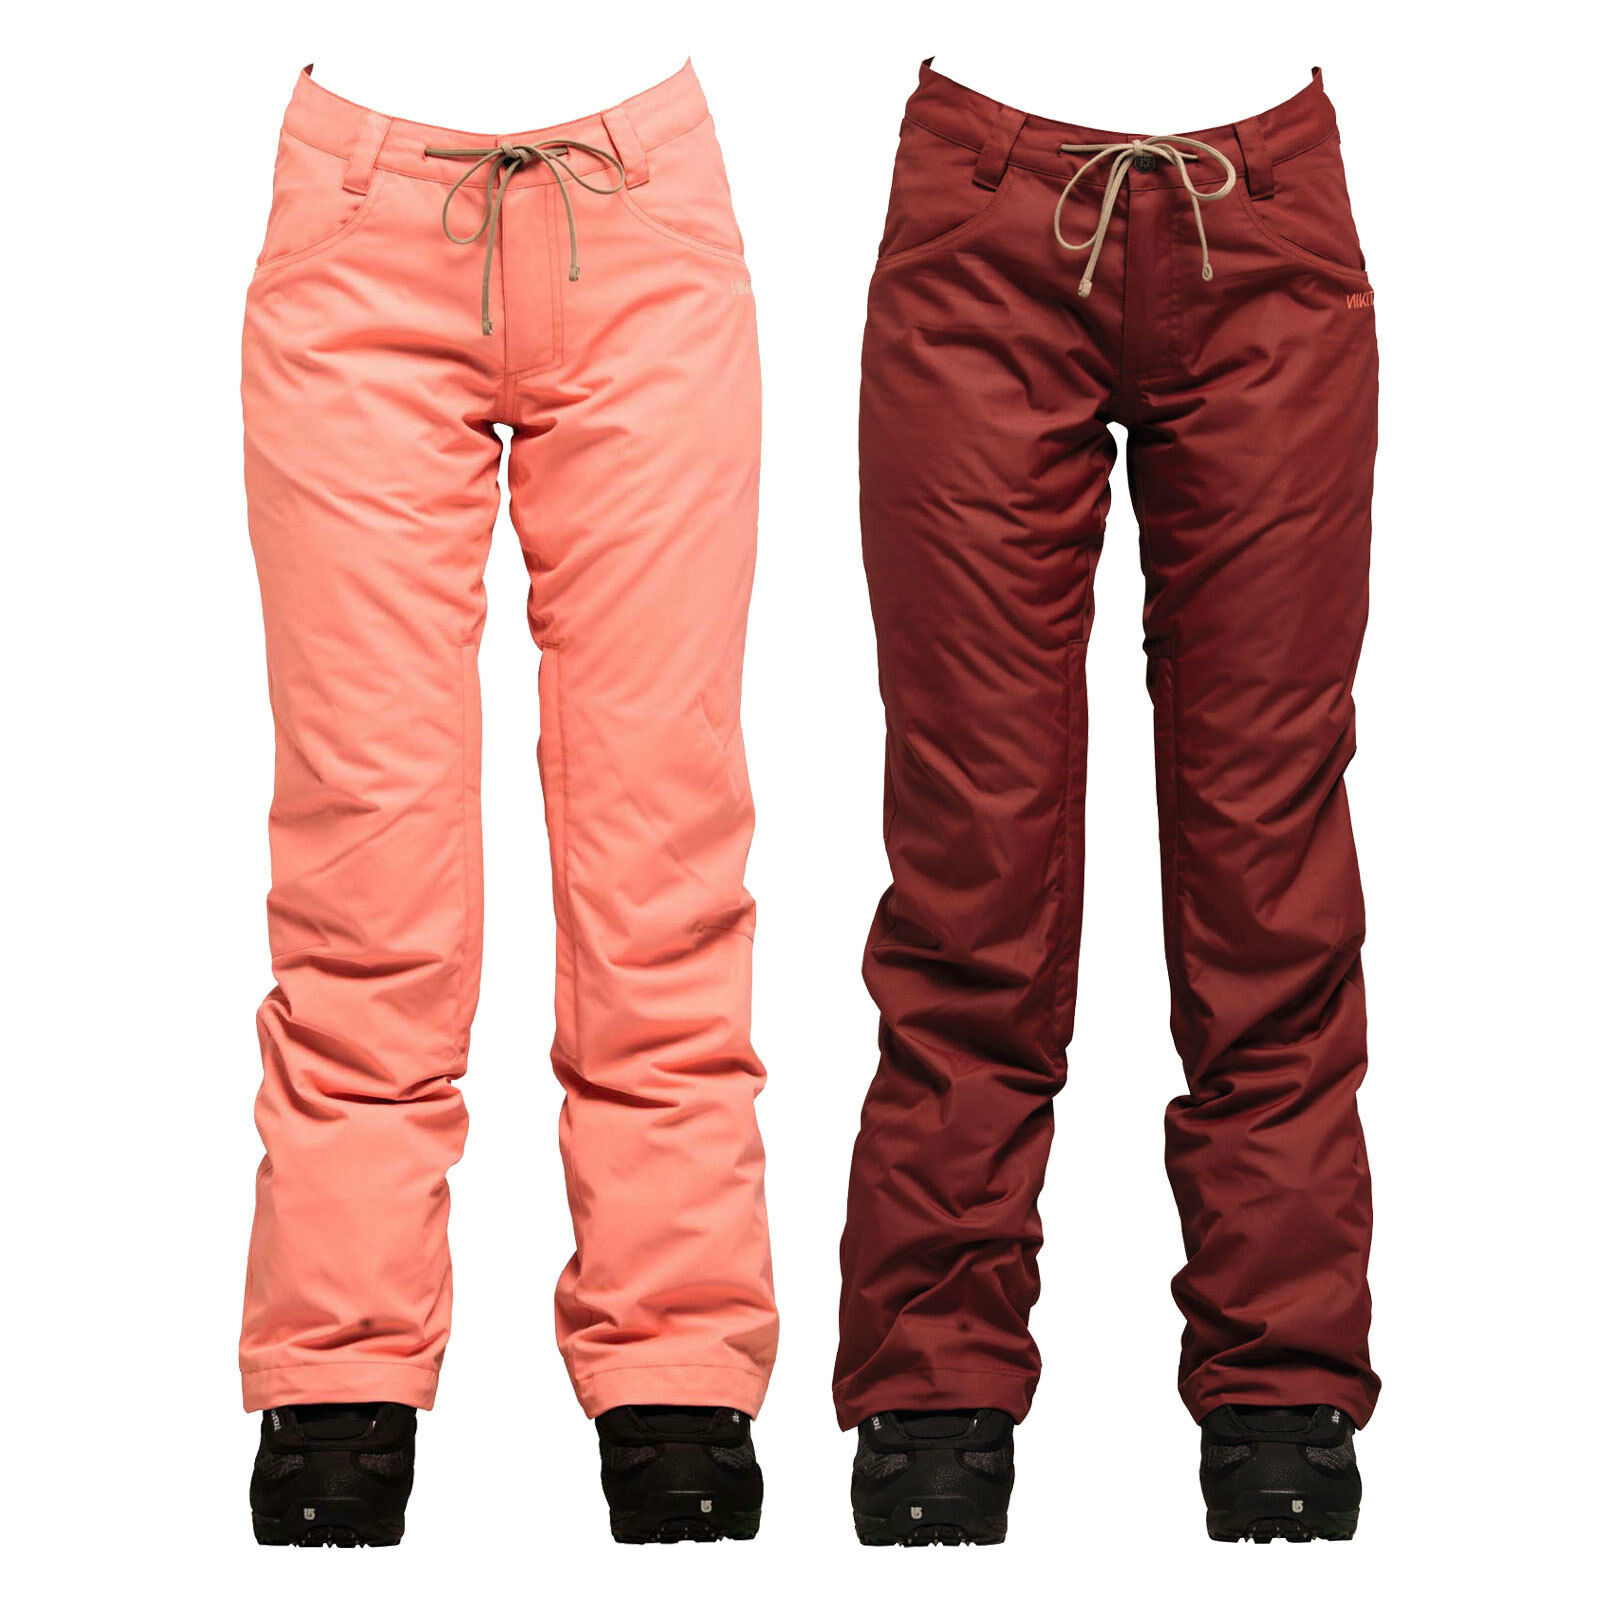 Nikita Cedar Pant Ladies Snowboard Trousers Ski  Trousers Winter Pants Winter Sports New  outlet online